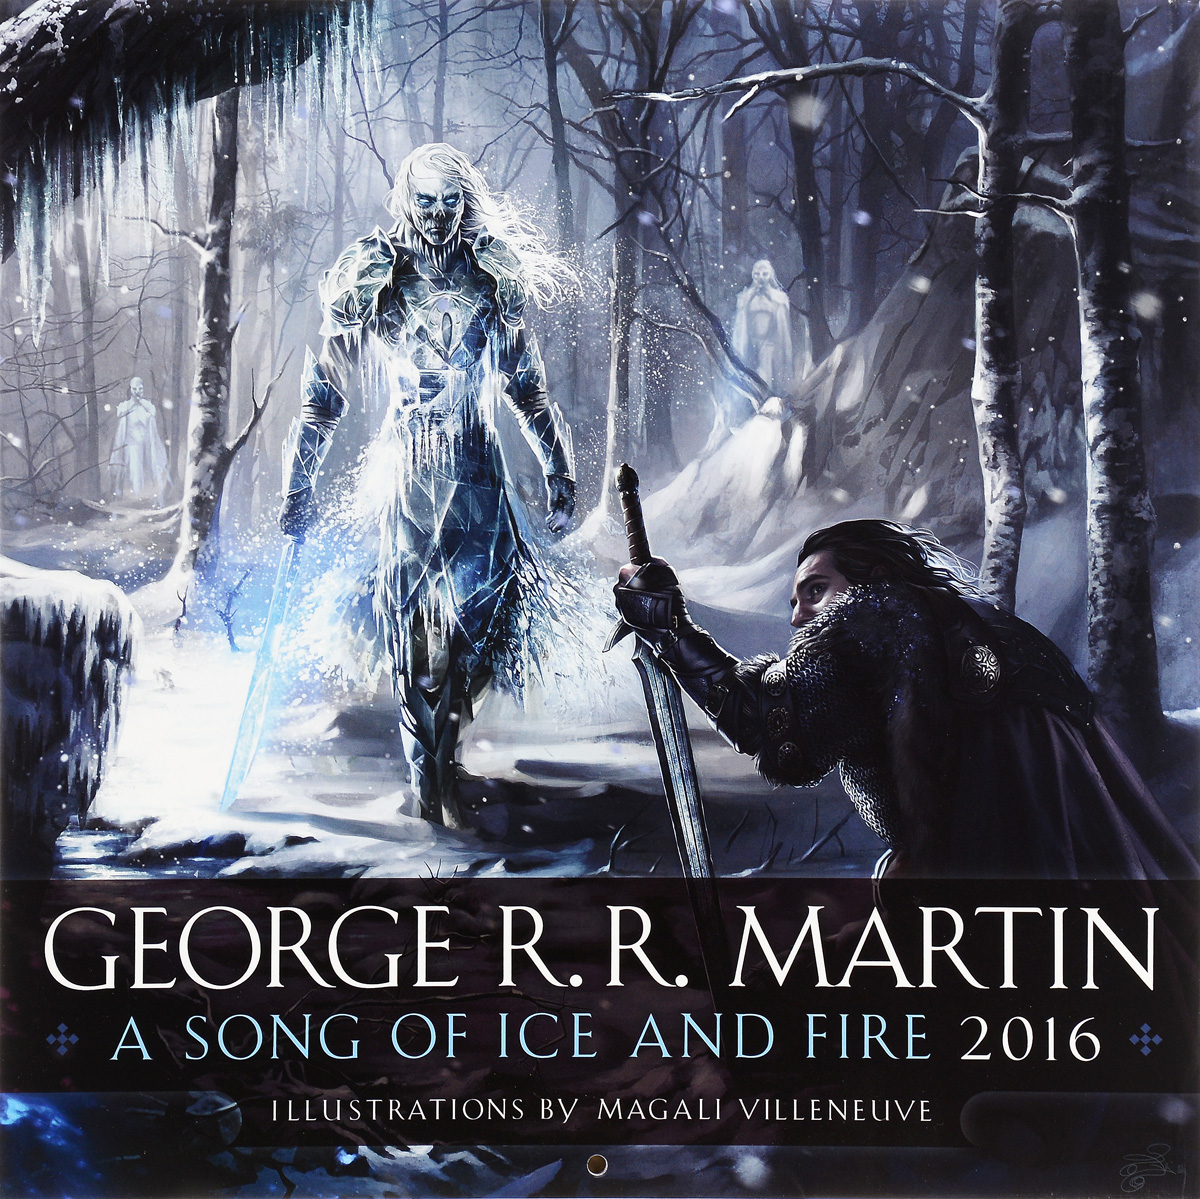 SONG OF ICE AND FIRE 2016 морган райс a land of fire page 10